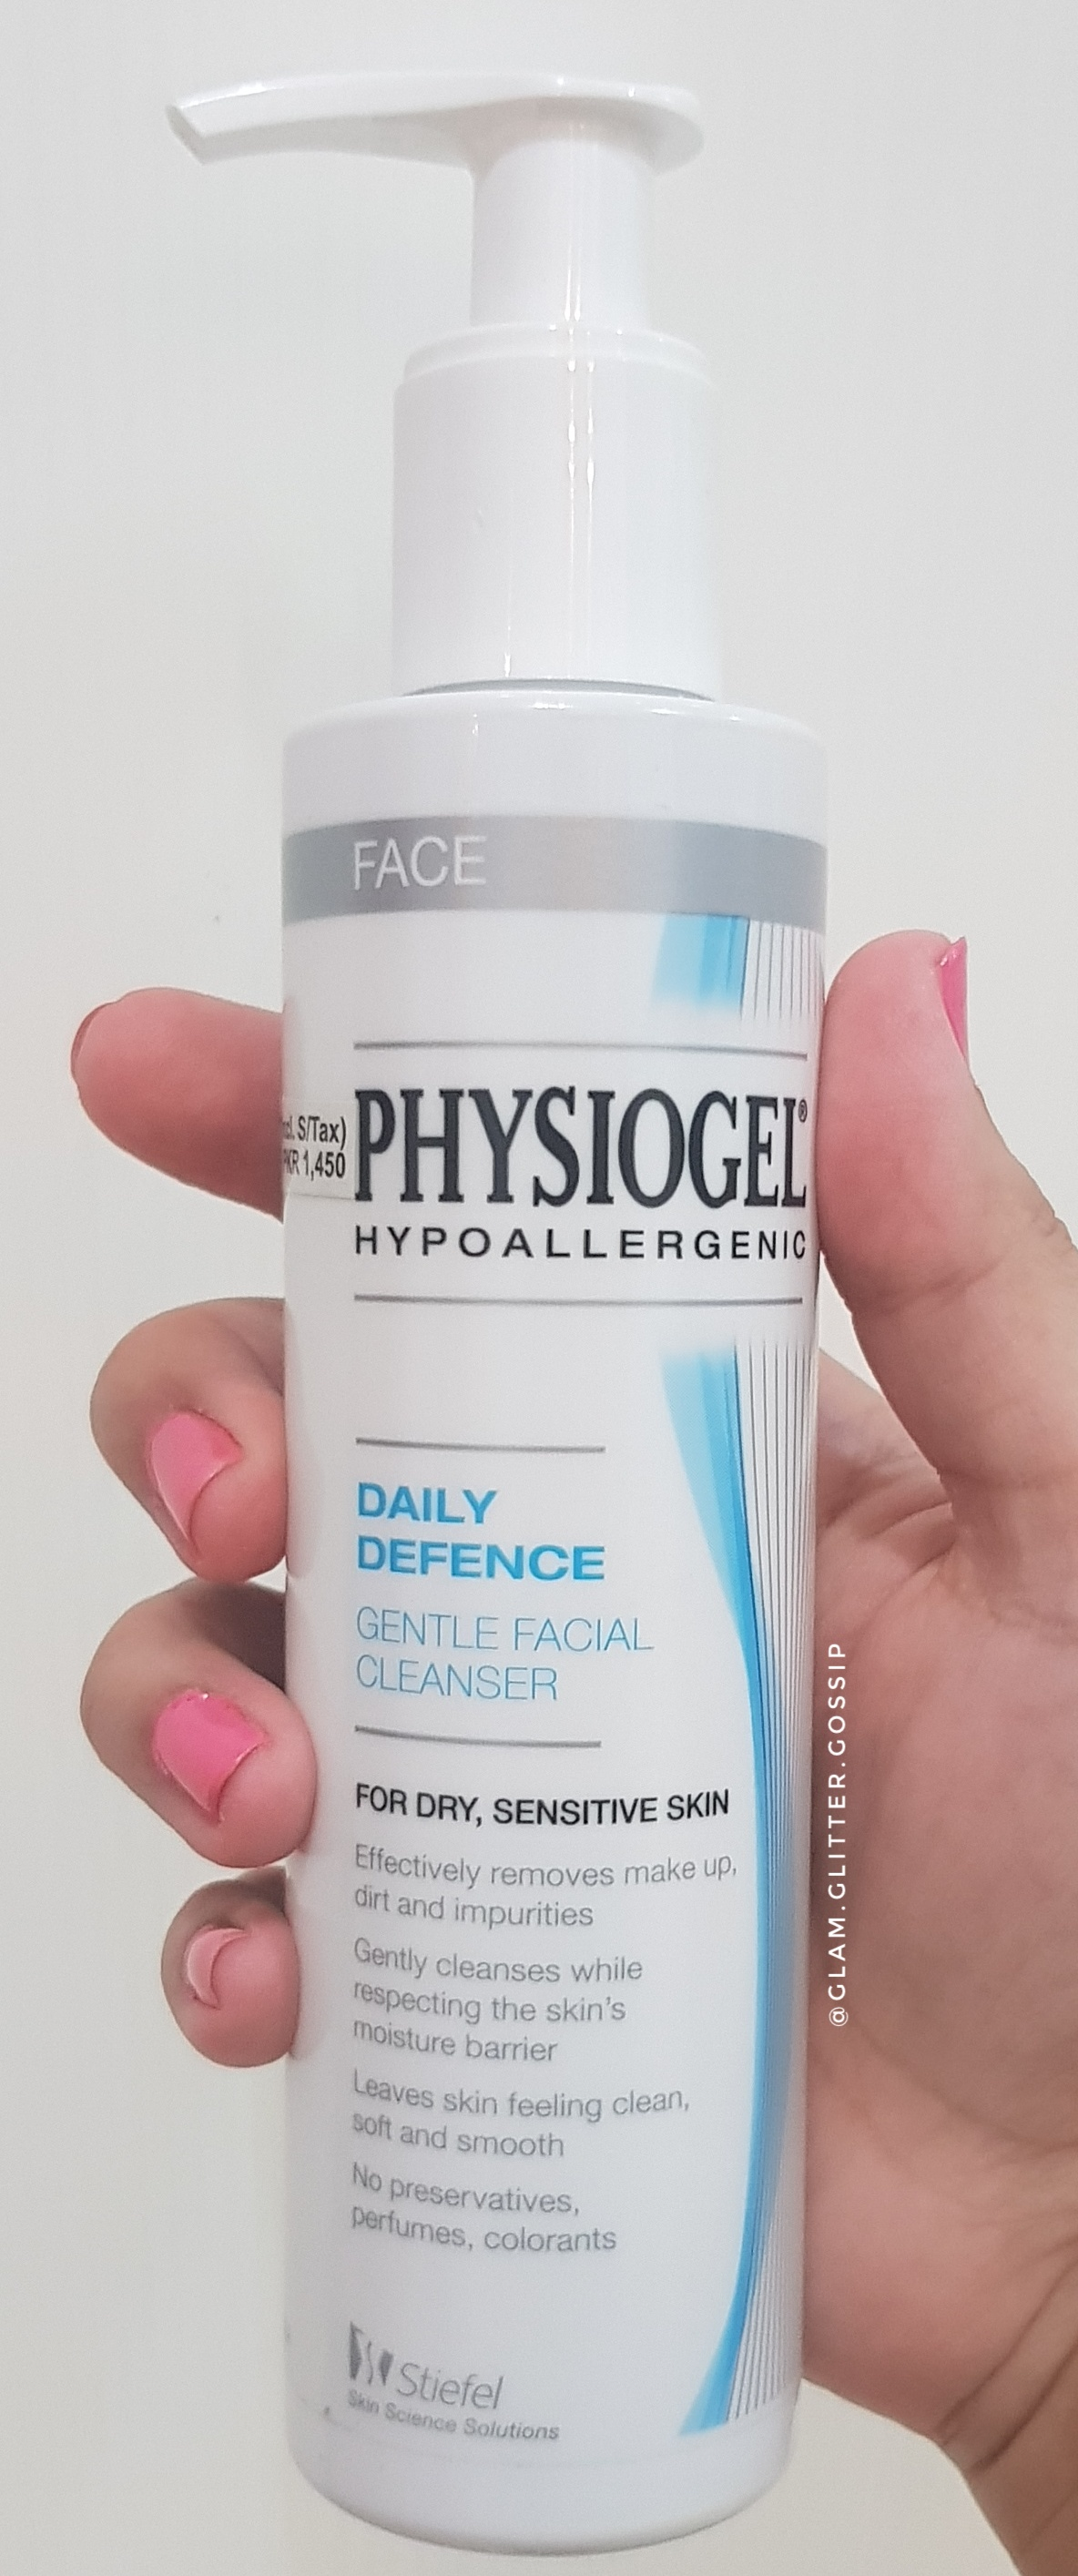 Physiogel Daily Defence Review